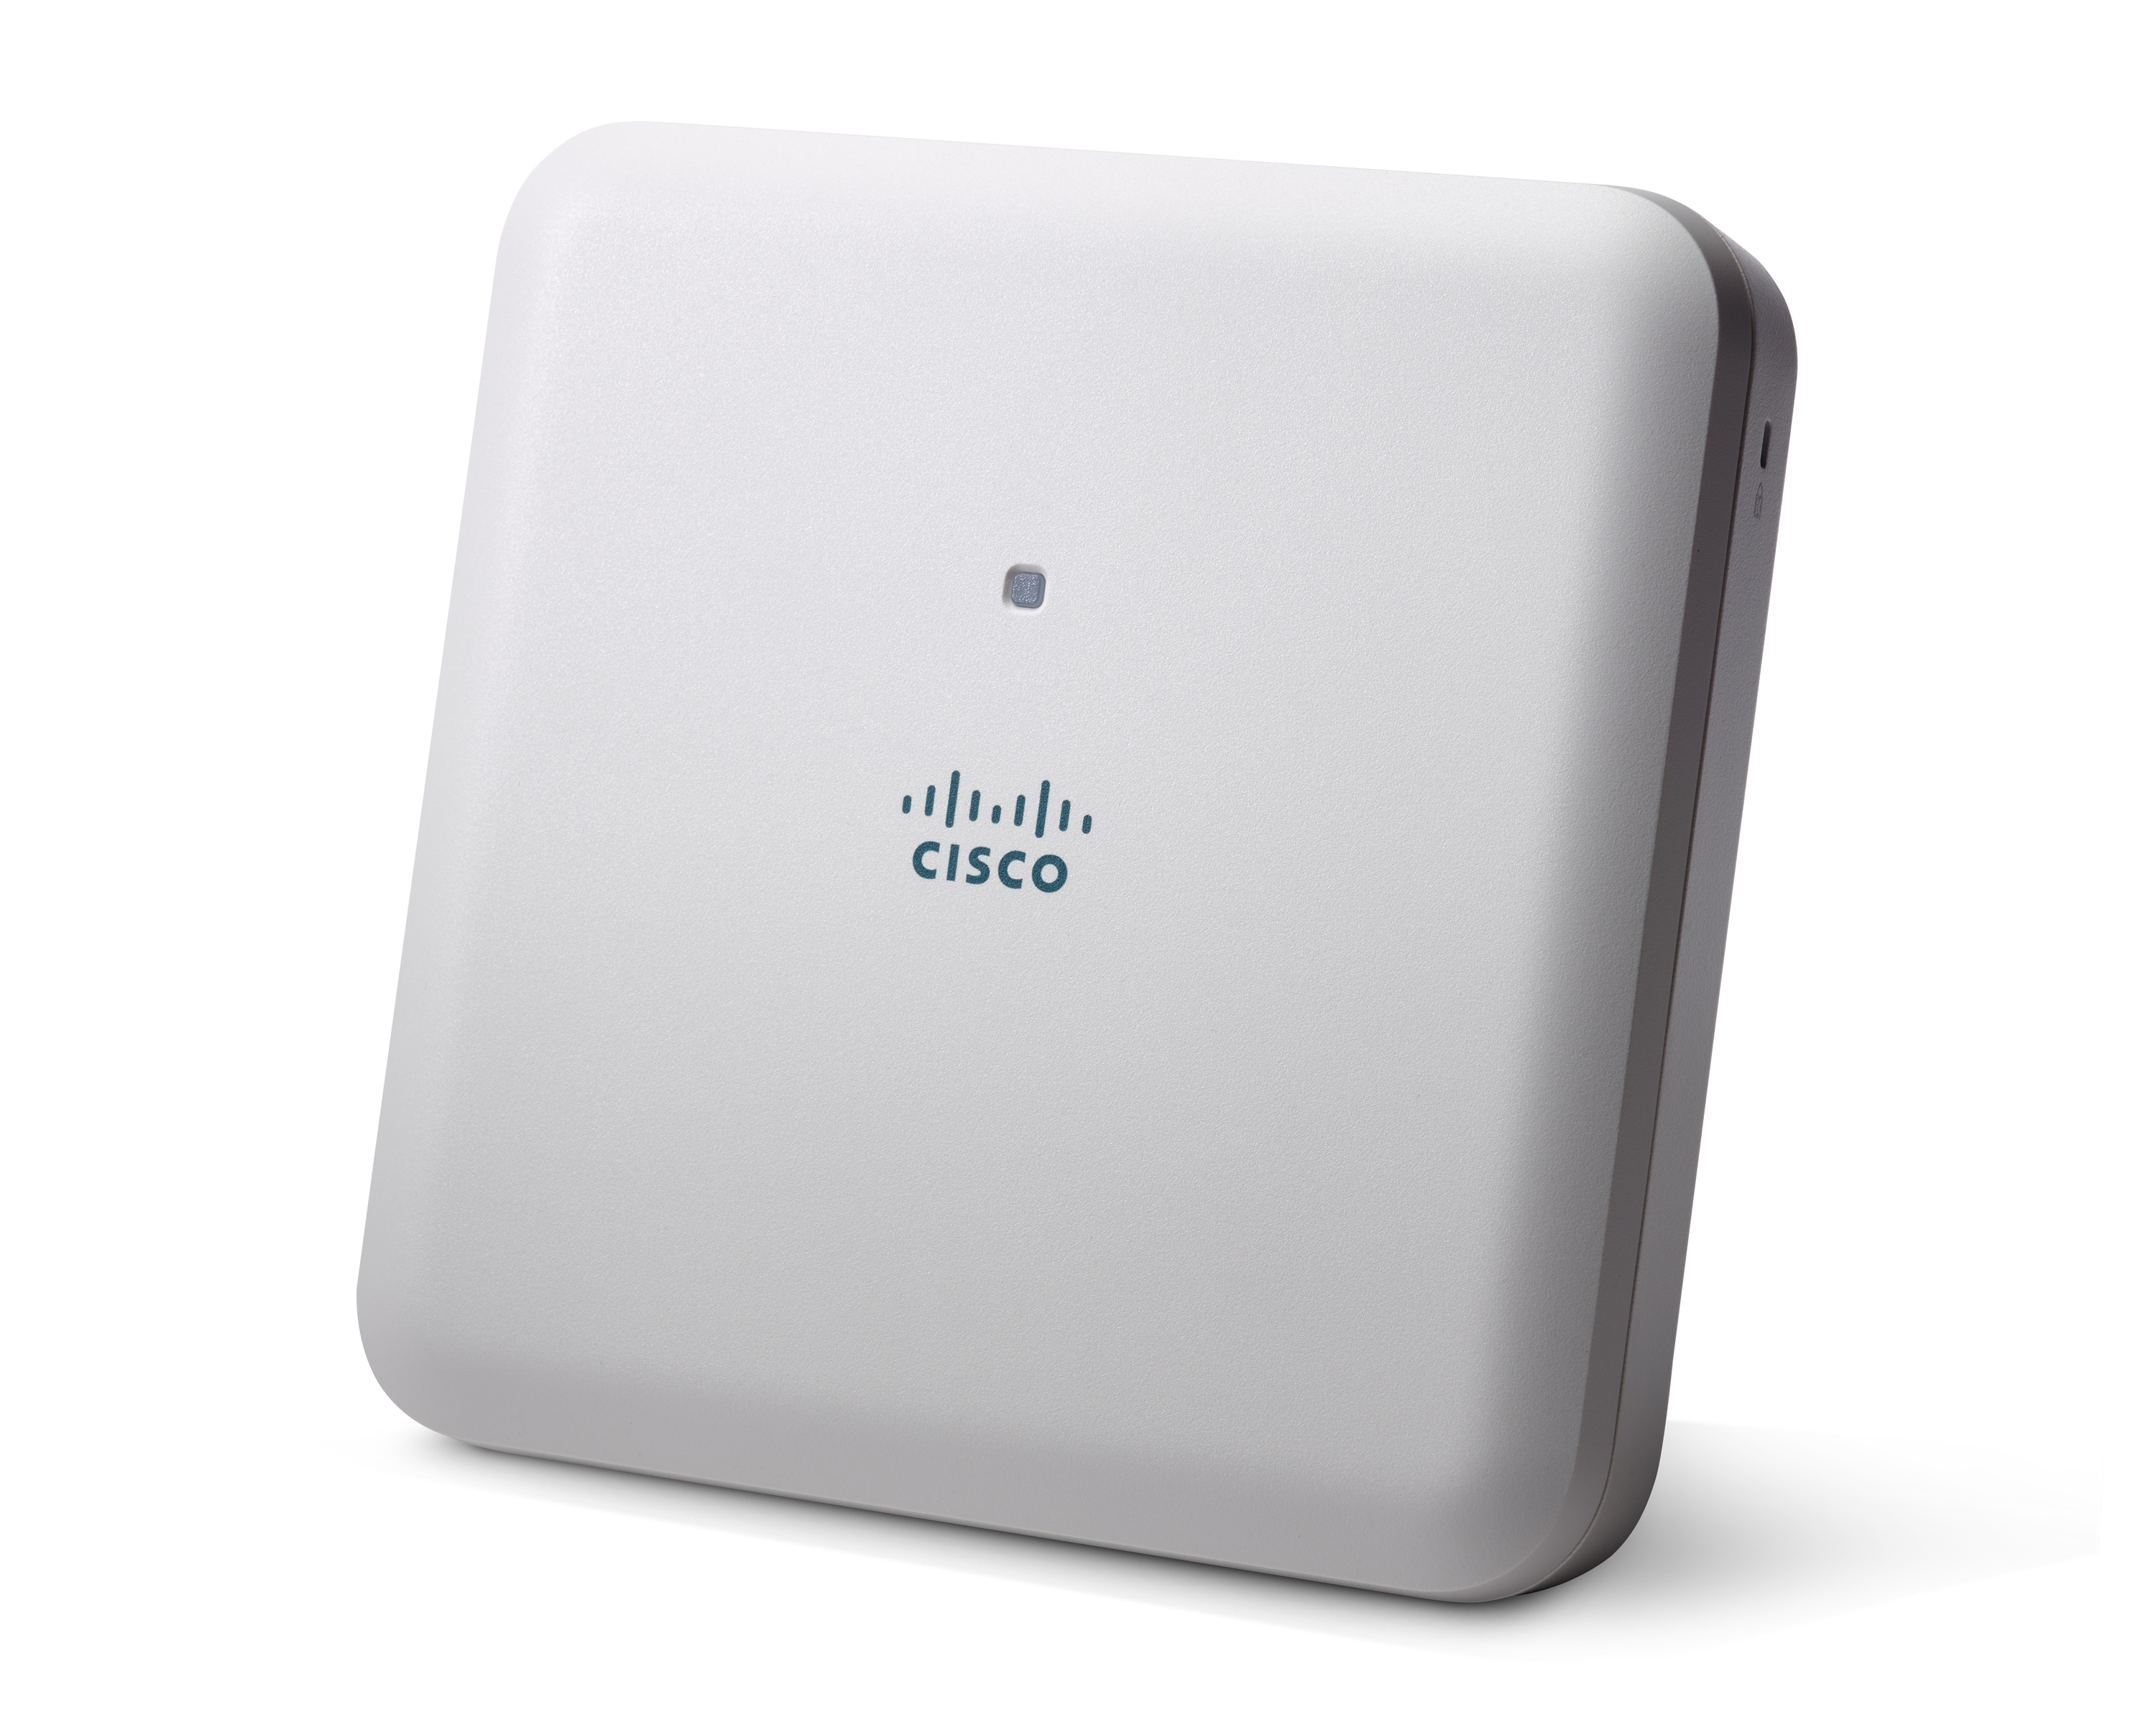 Cisco Aironet 1832I - Drahtlose Basisstation - 802.11ac (draft 5.0)